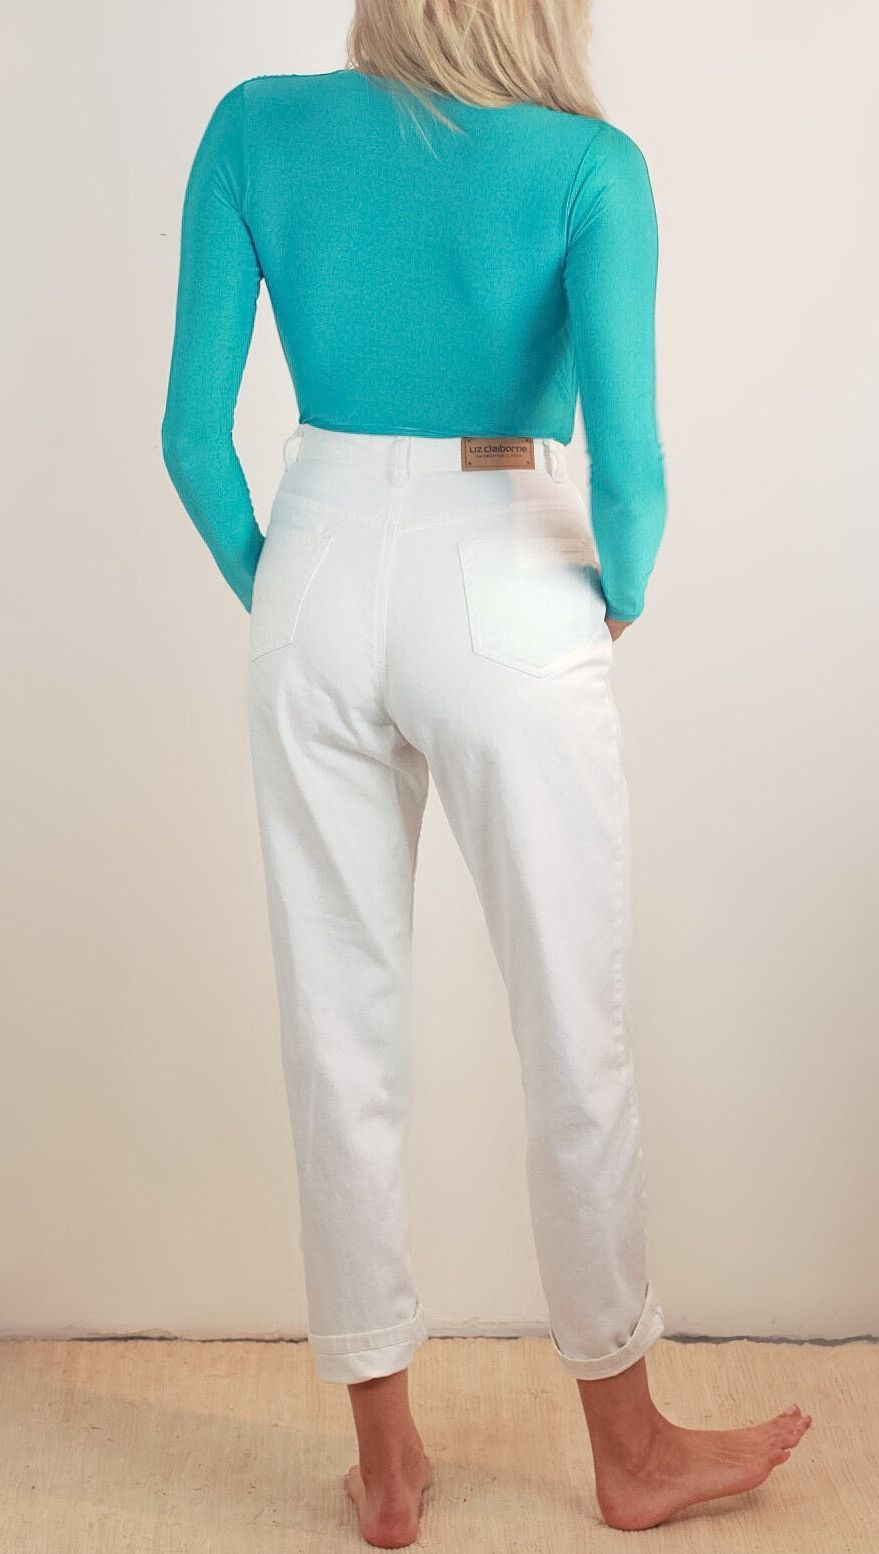 Liz Claiborne White Denim High Waisted Jeans